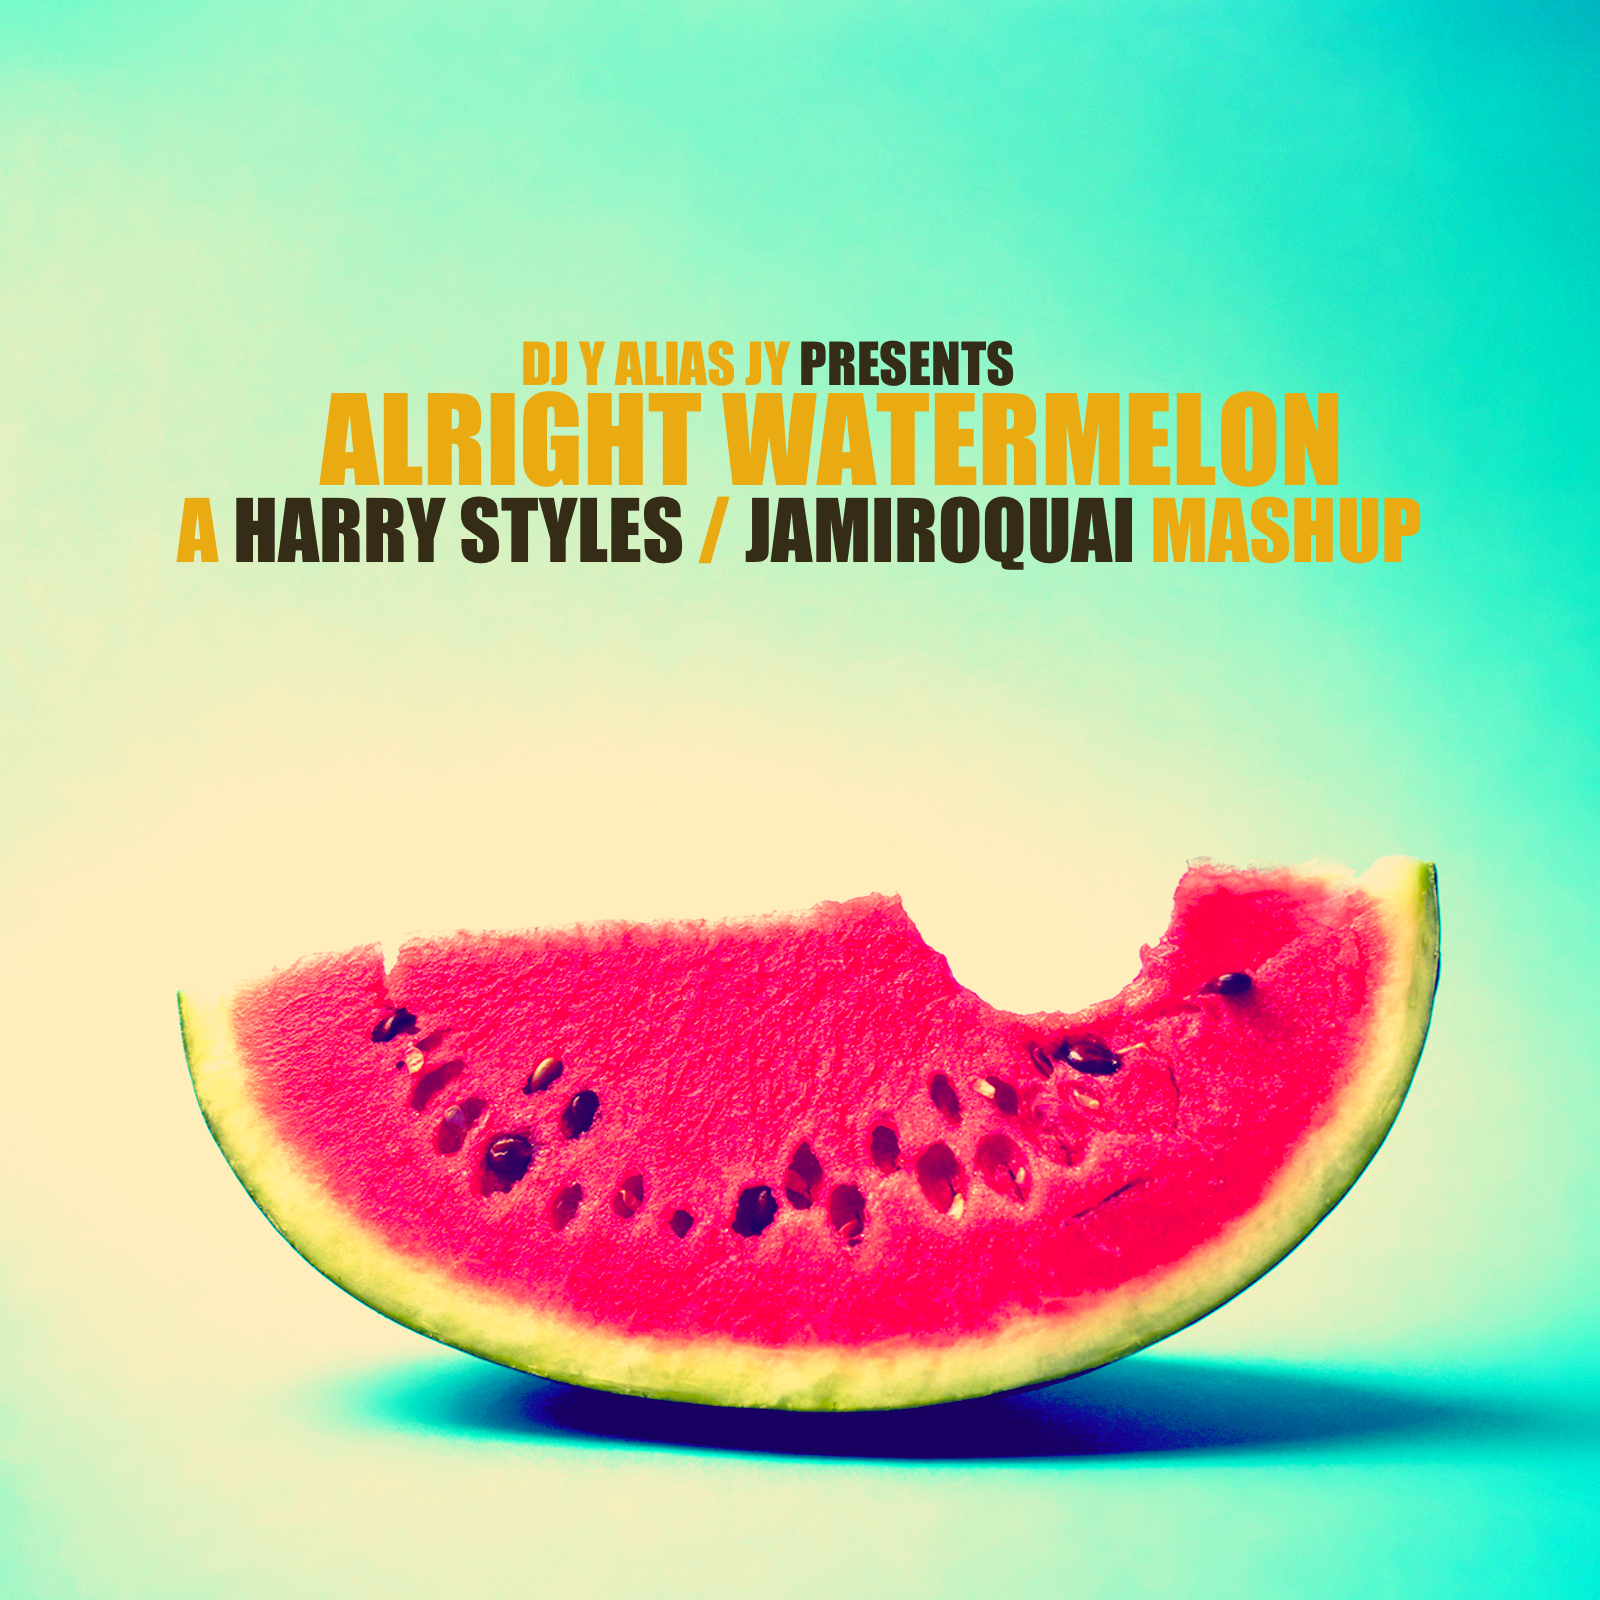 Alright Watermelon (Harry Styles / Jamiroquai)